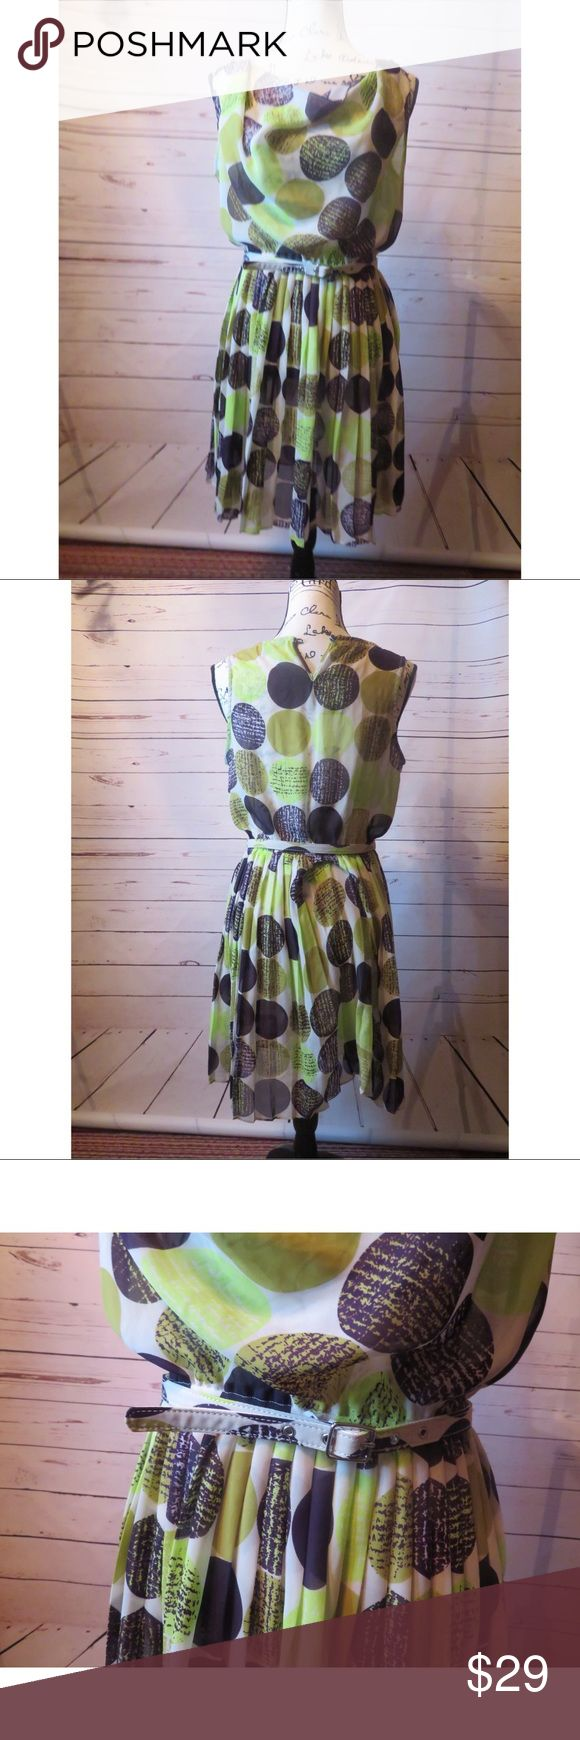 "Banana Republic Green Polka Dot Dress Size 6 Banana Republic Womens 6 Shirt Dress Green Sleeveless Polka Dot with Belt  Gently Used Great Condition  Stretchy  Some Fraying of the Material  Machine Wash Sleeveless  Size 6 Made in the Philippines   Material: 100% Polyester   Measurements Length: 36"" Bust: 32"" Waist: 24"" stretch  Hips: 38.5"" Banana Republic Dresses Midi"